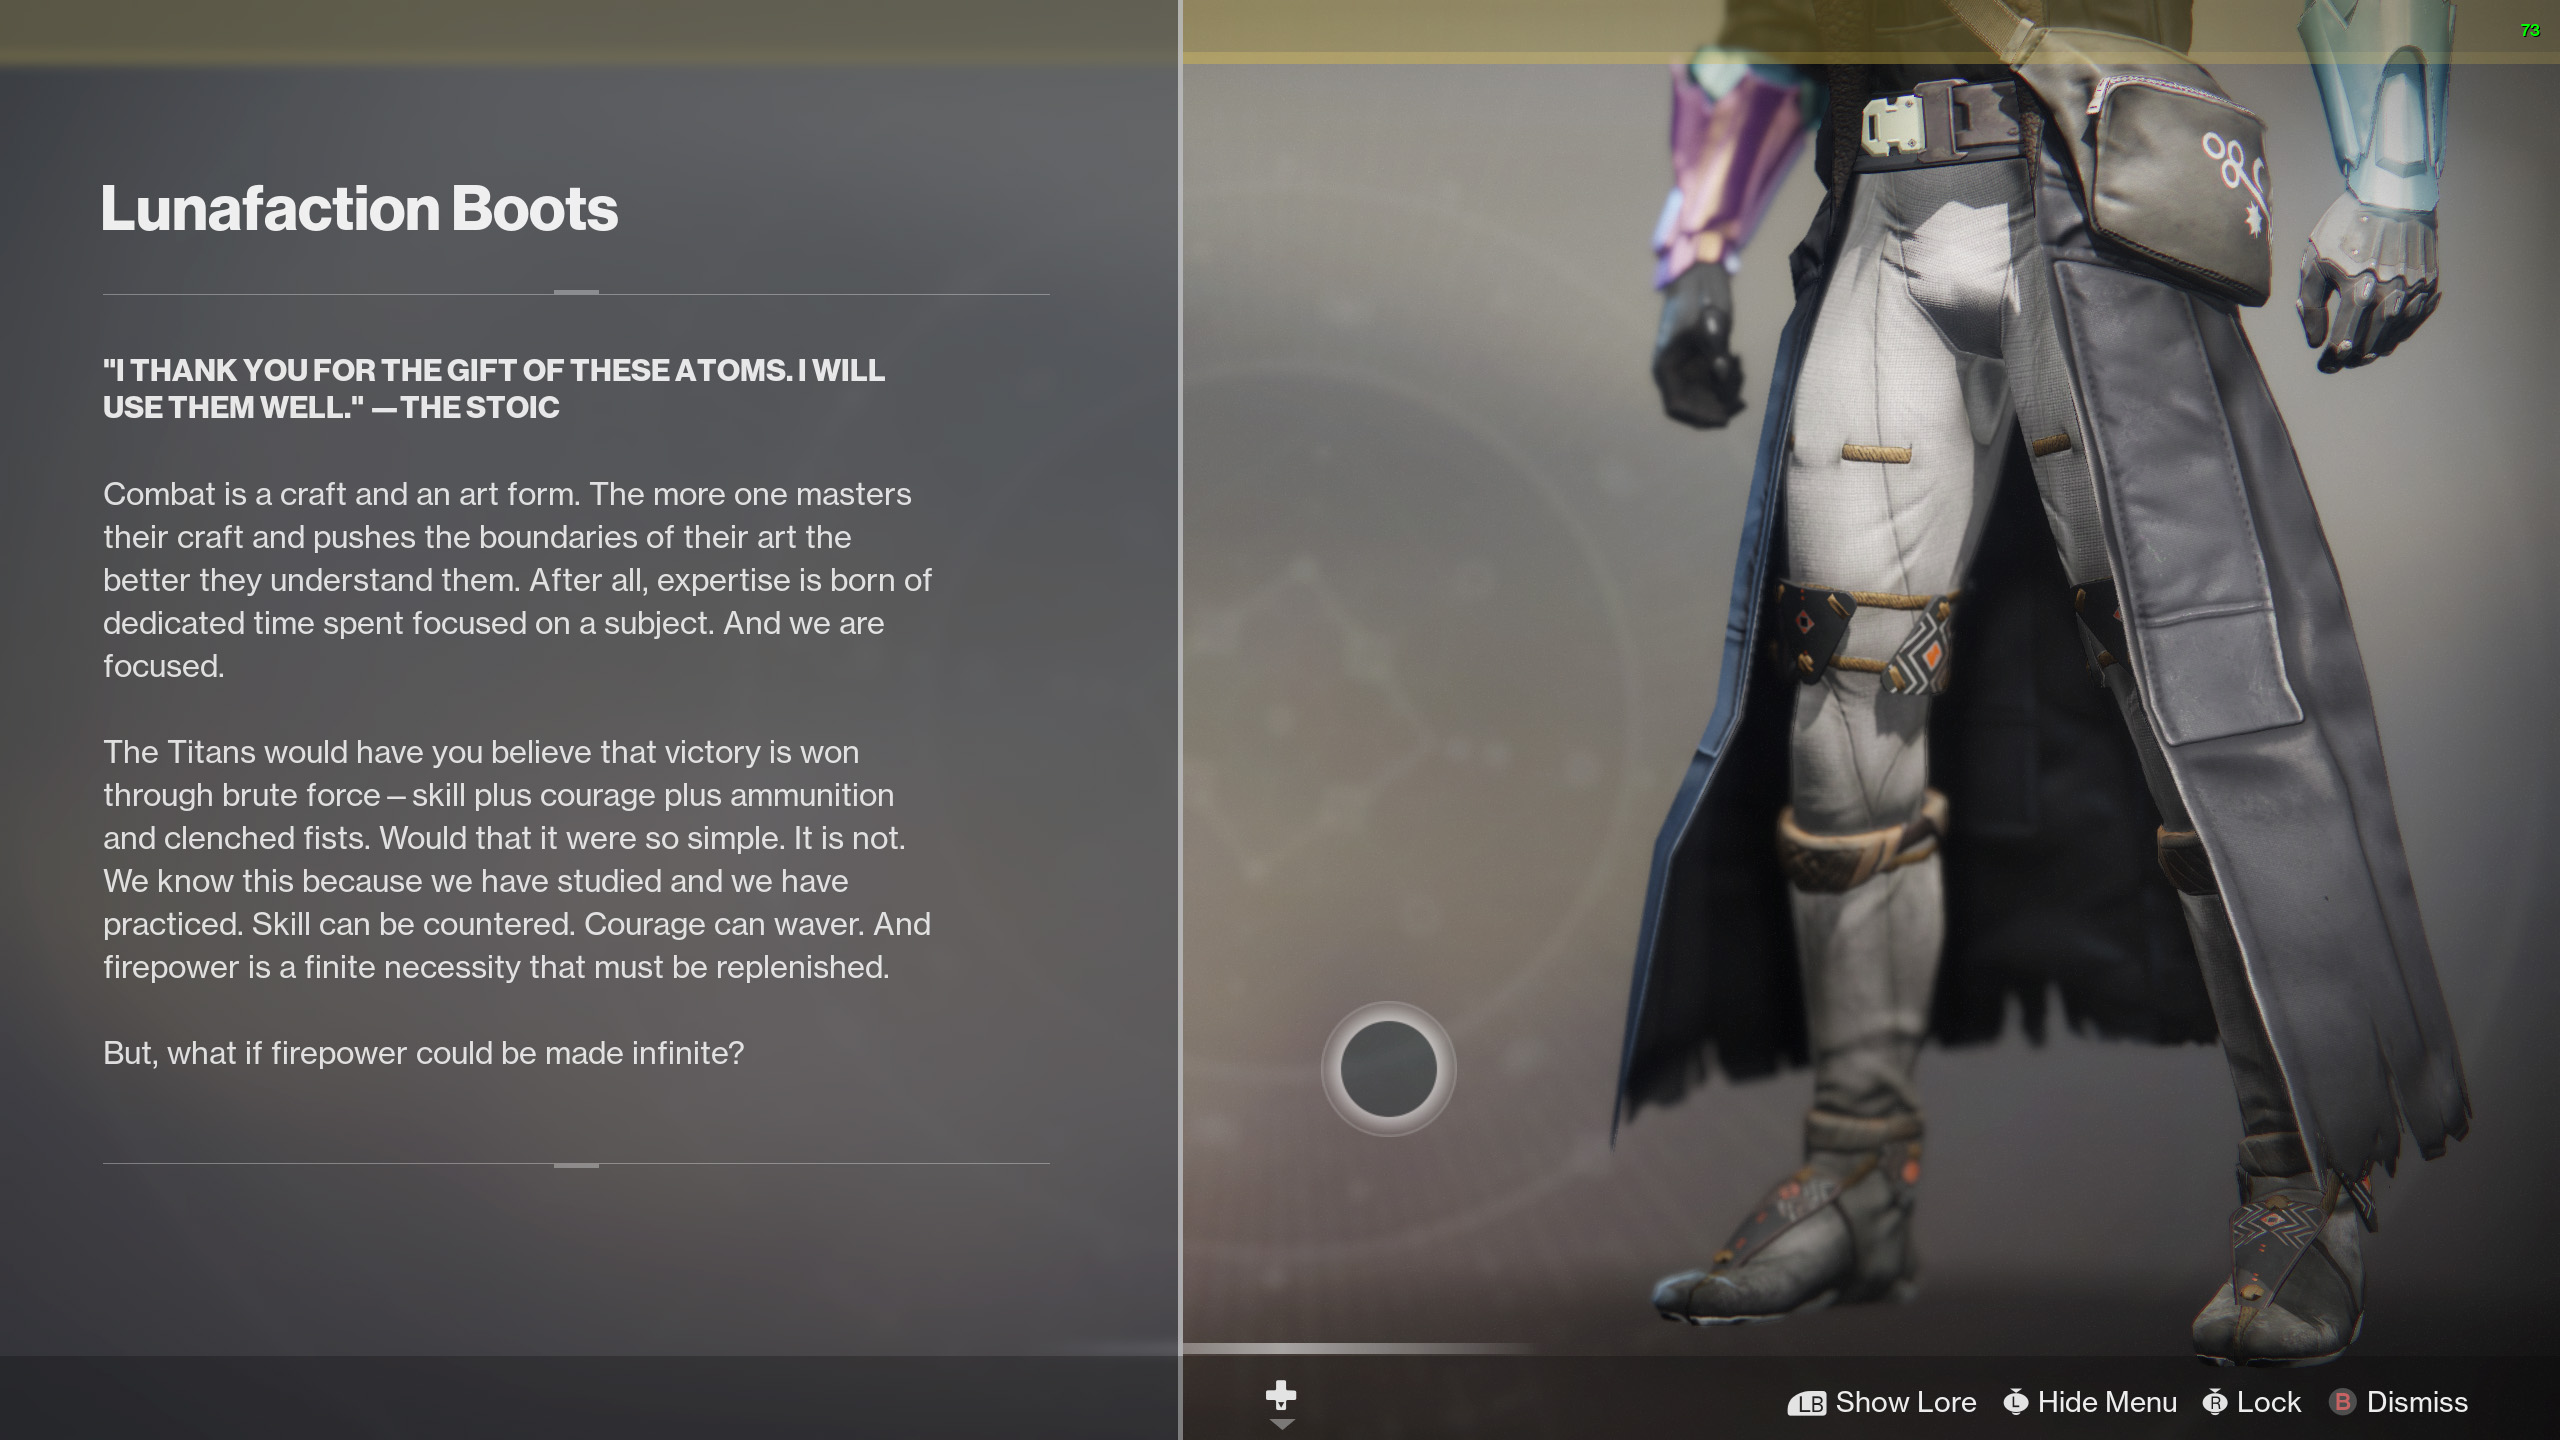 destiny 2 lunafaction boots lore